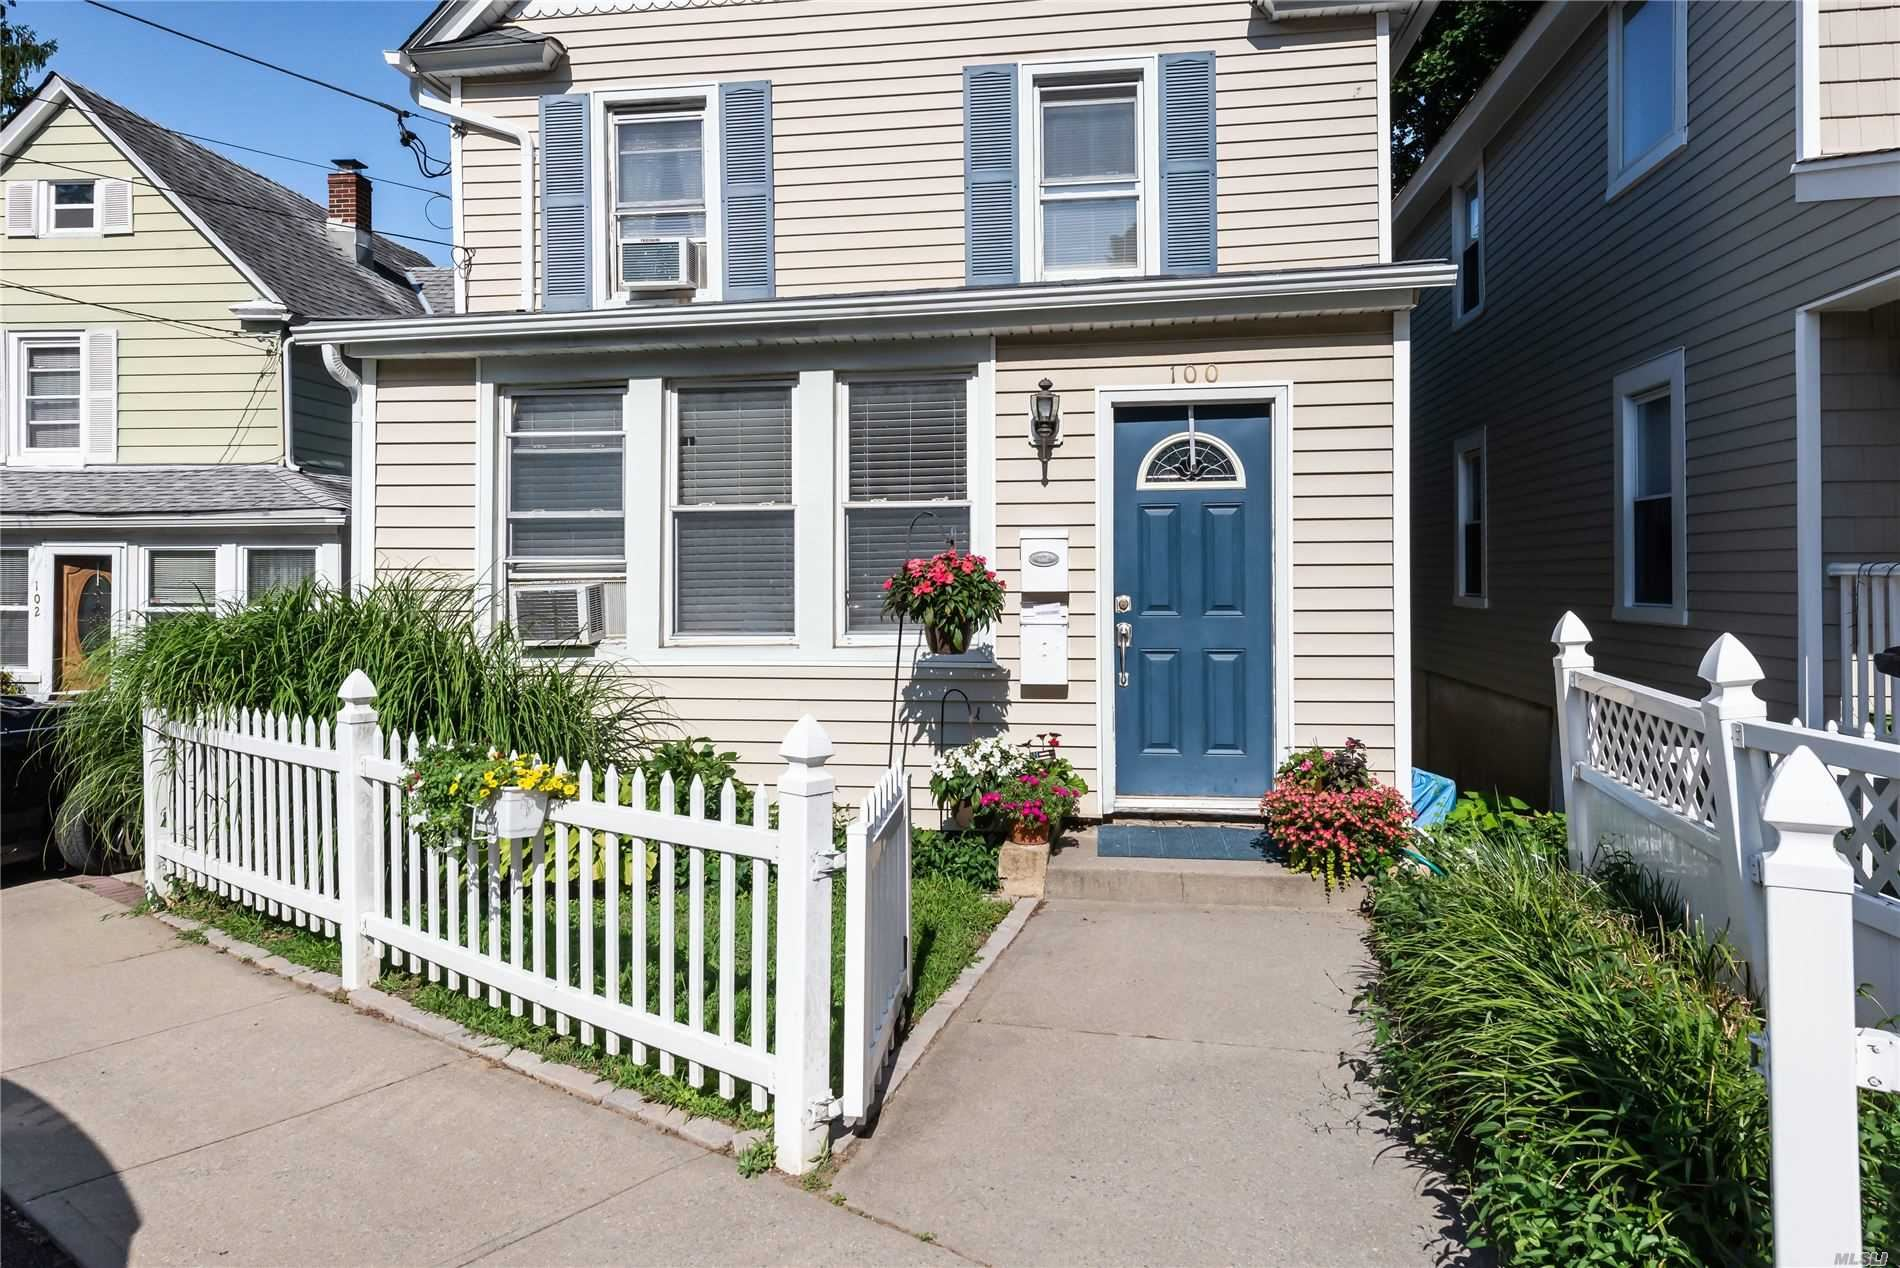 100 School, Oyster Bay, NY 11771 - MLS#: 3236355